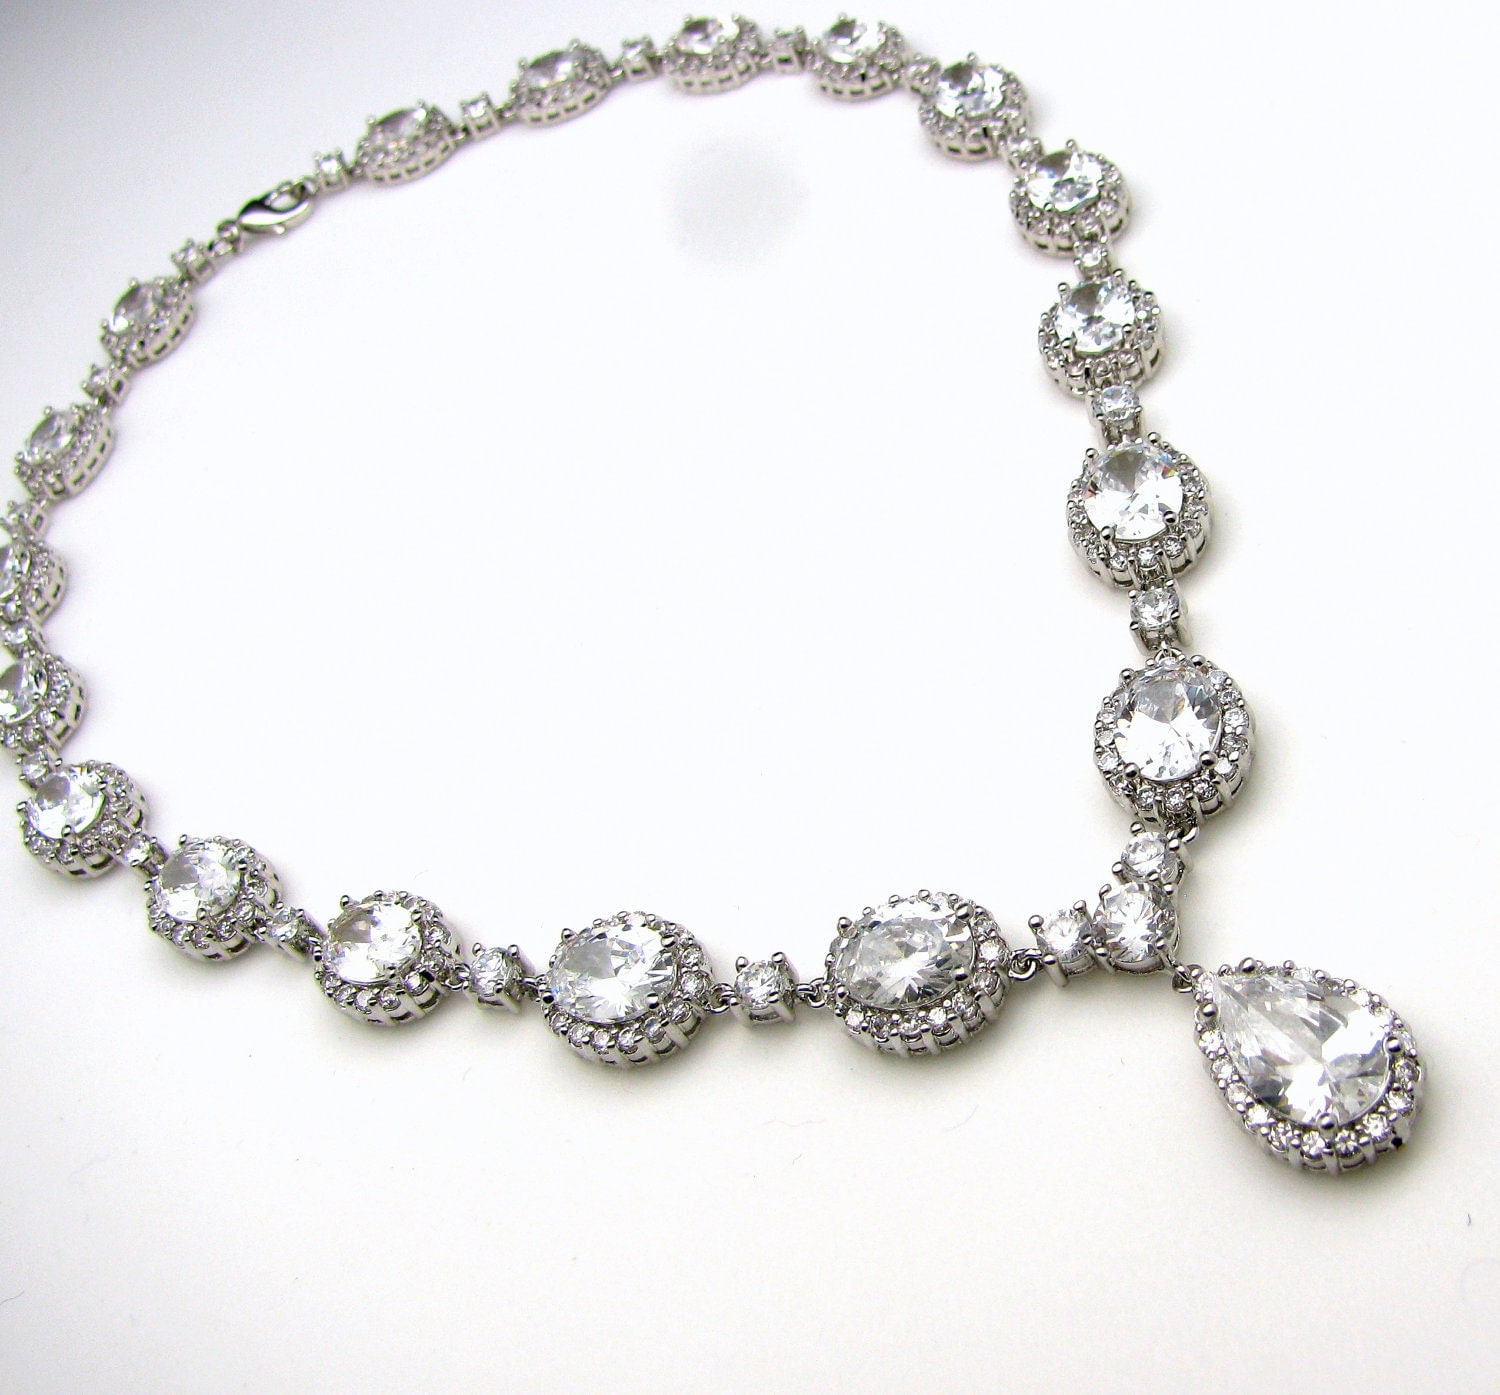 Bridal jewelry christams pageant prom wedding necklace clear for Wedding ring necklace